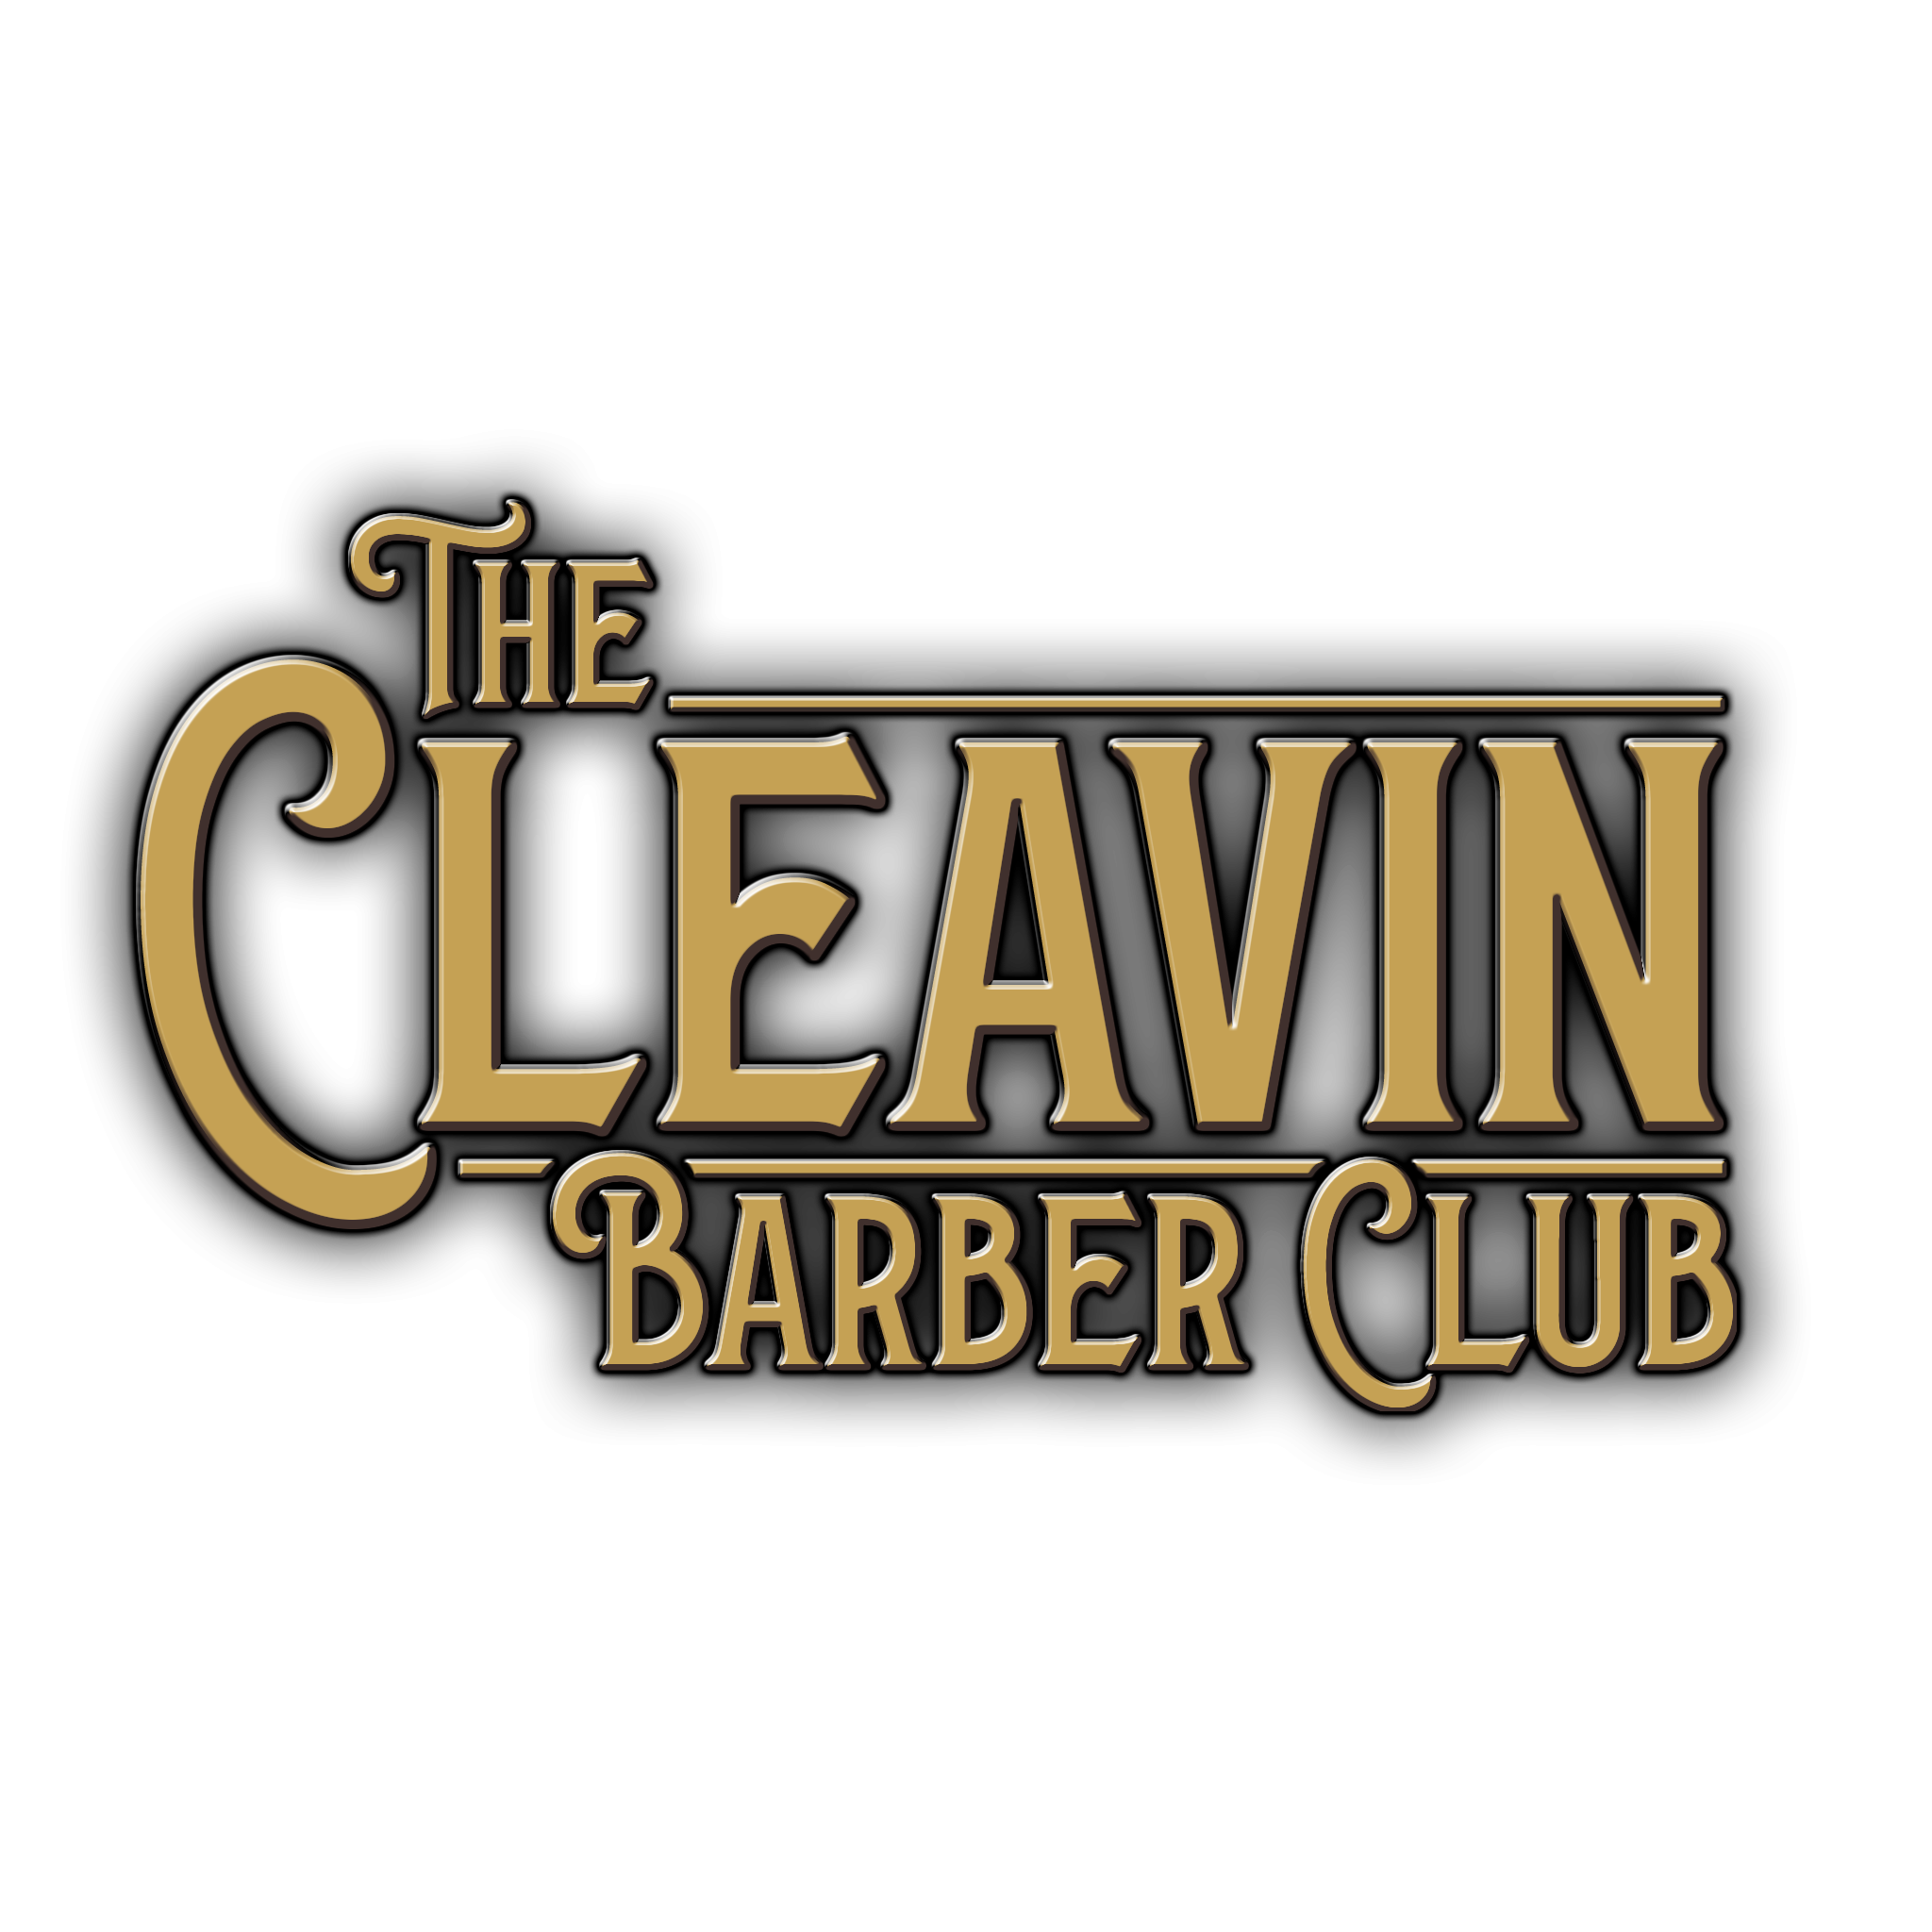 The Cleavin Barber Club